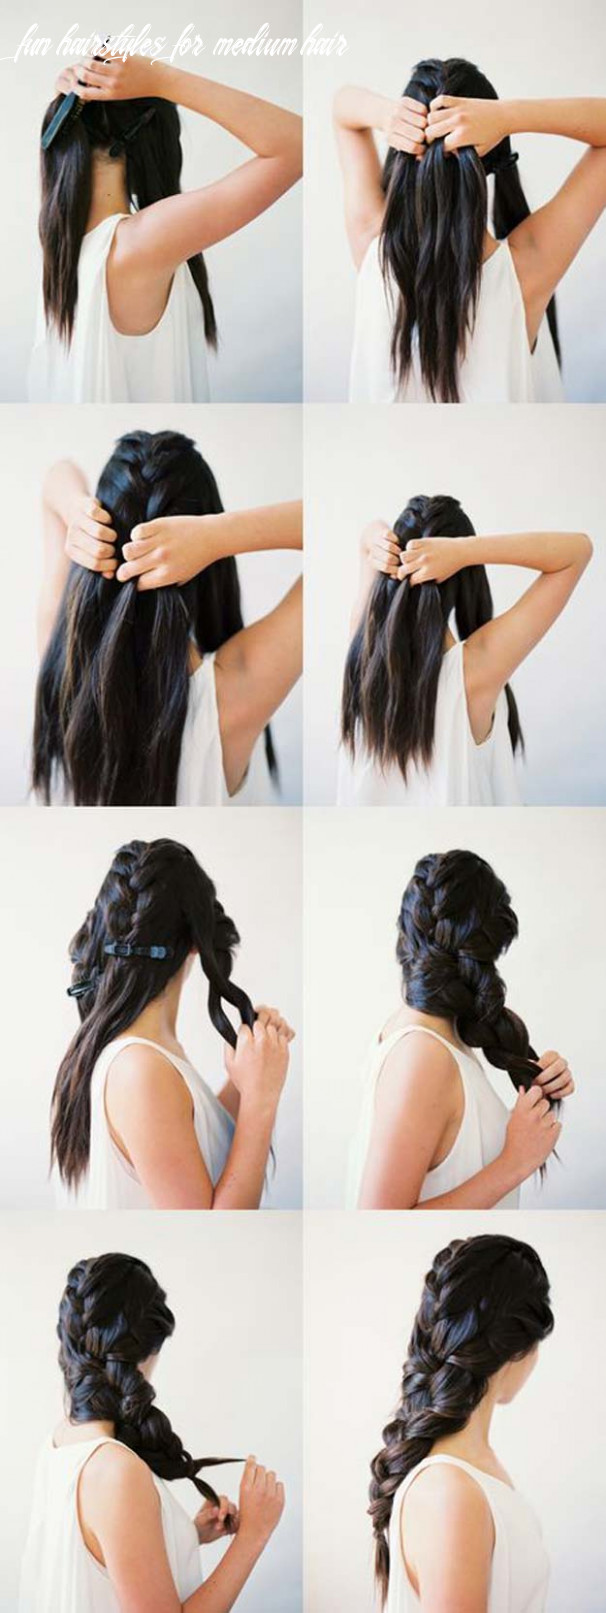 9 DIY Cool Easy Hairstyles That Real People Can Actually Do at Home!